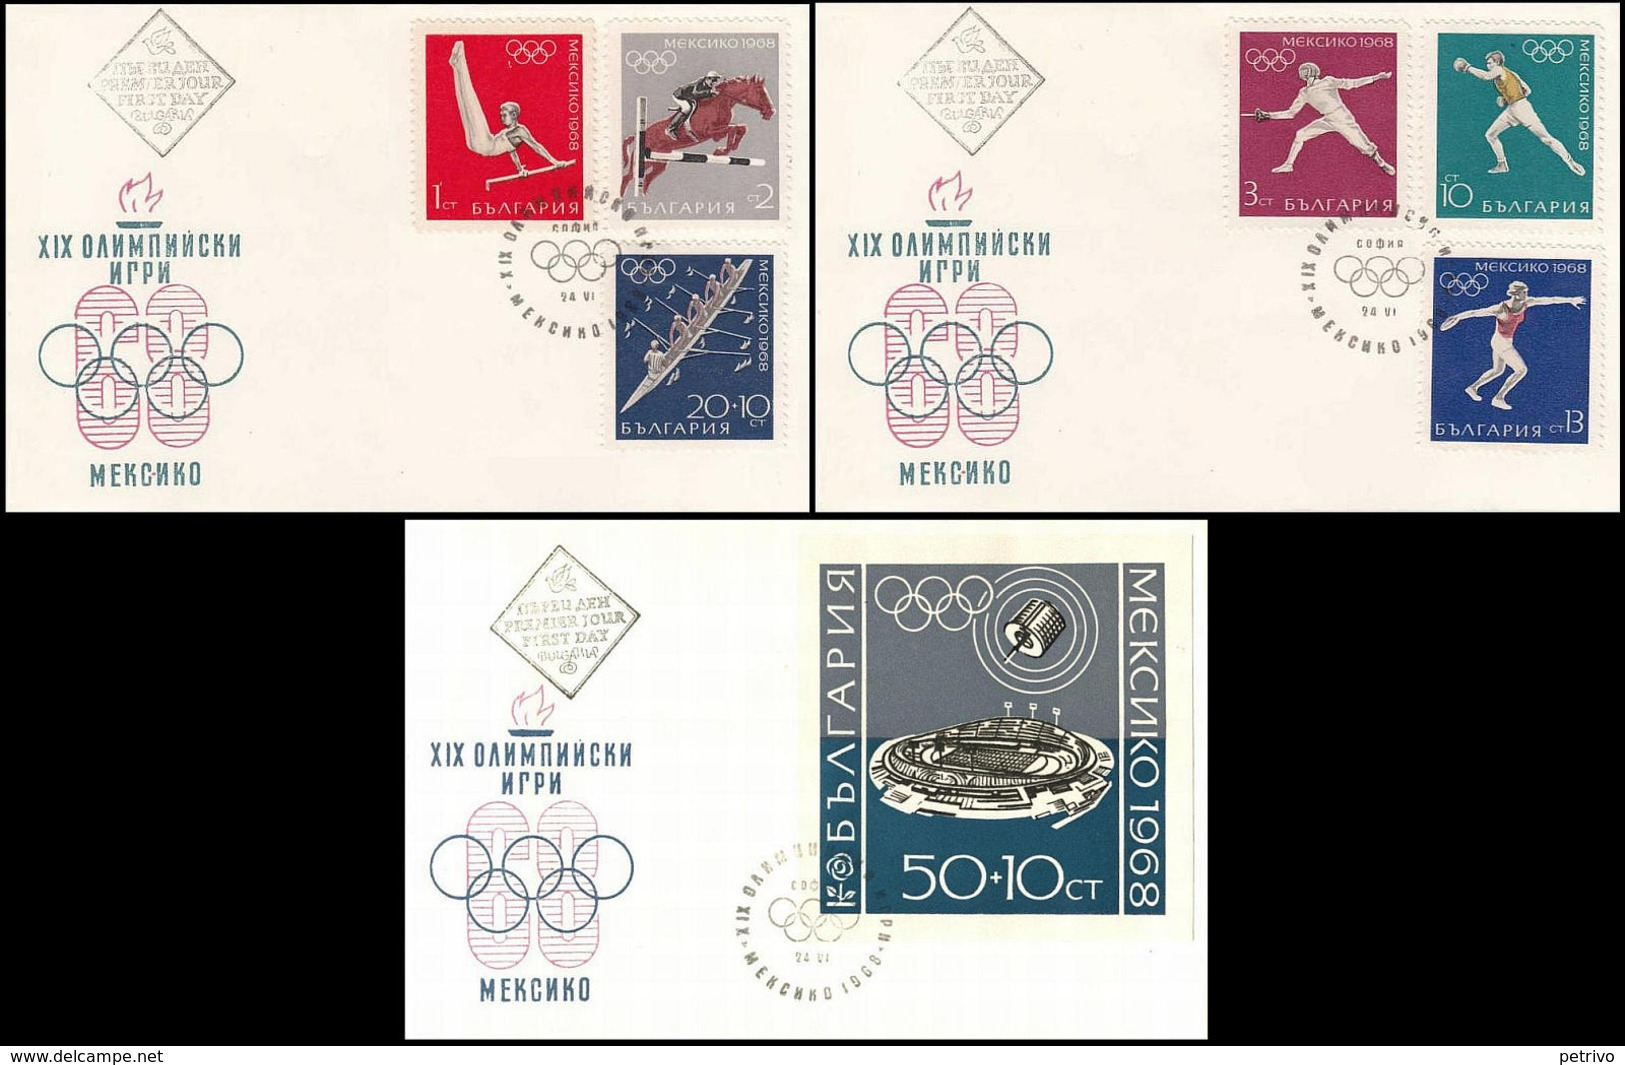 Bulgaria - 1968 - Olympic Games 1968 - FDC - Summer 1968: Mexico City